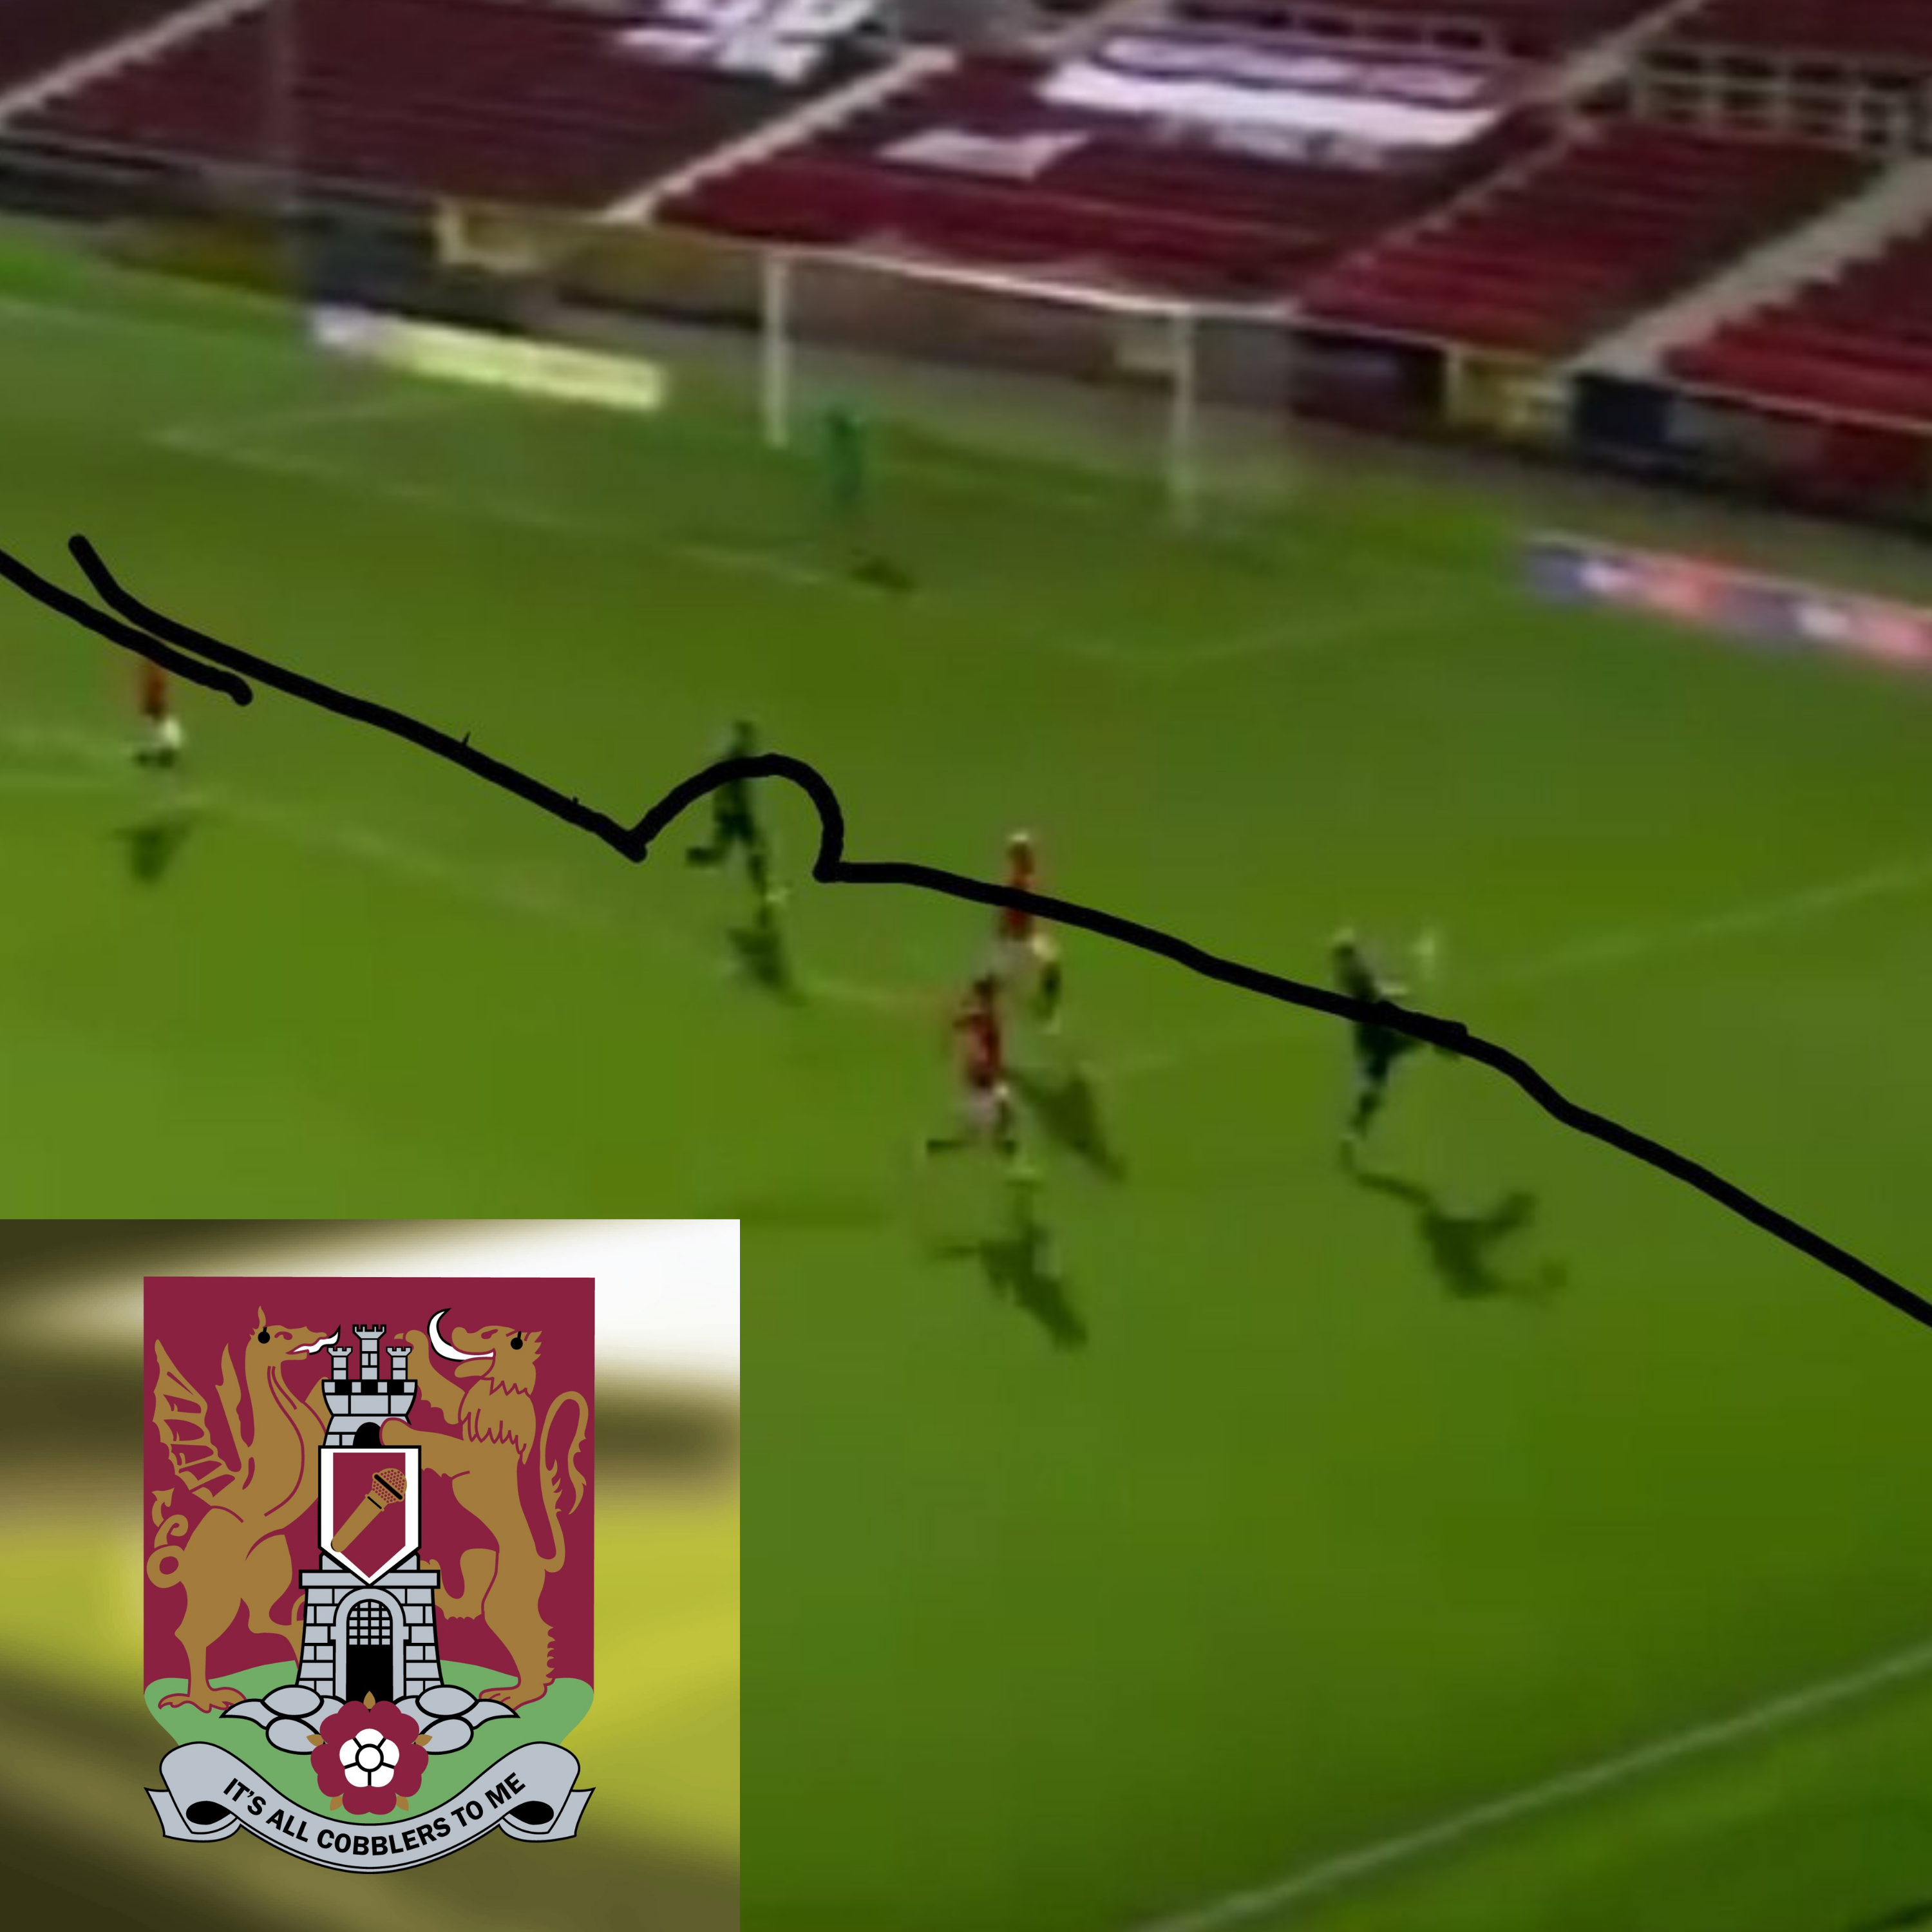 Screenshot of the offside decision from Swindon vs Northampton on 20th August 2019. Badly drawn, straight line with semi circle around attacker, across the pitch. Podcast logo in bottom left